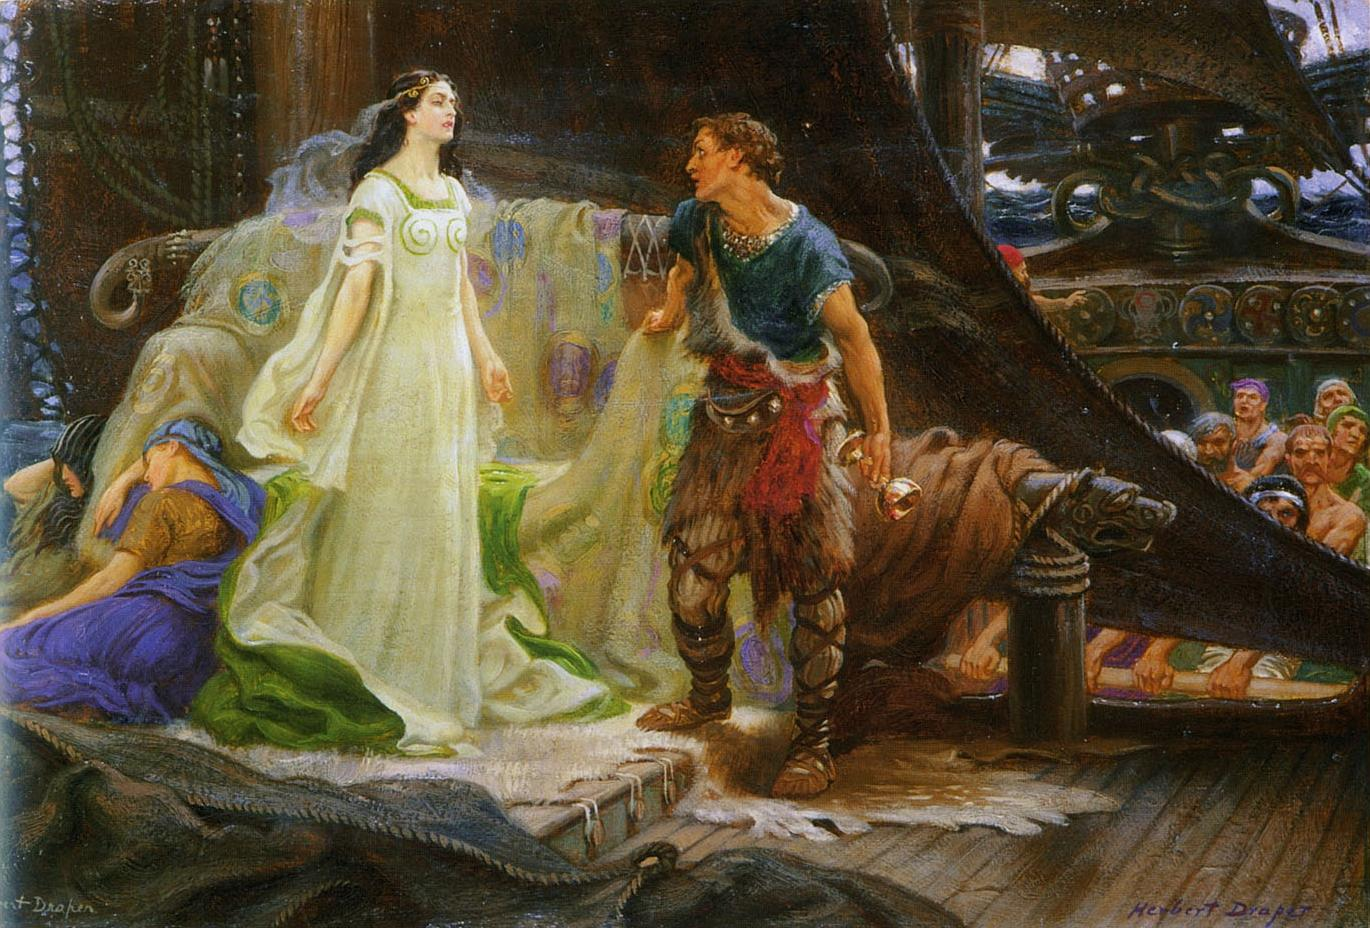 Tristan and Iseult as depicted by Herbert Draper (1863 1920).